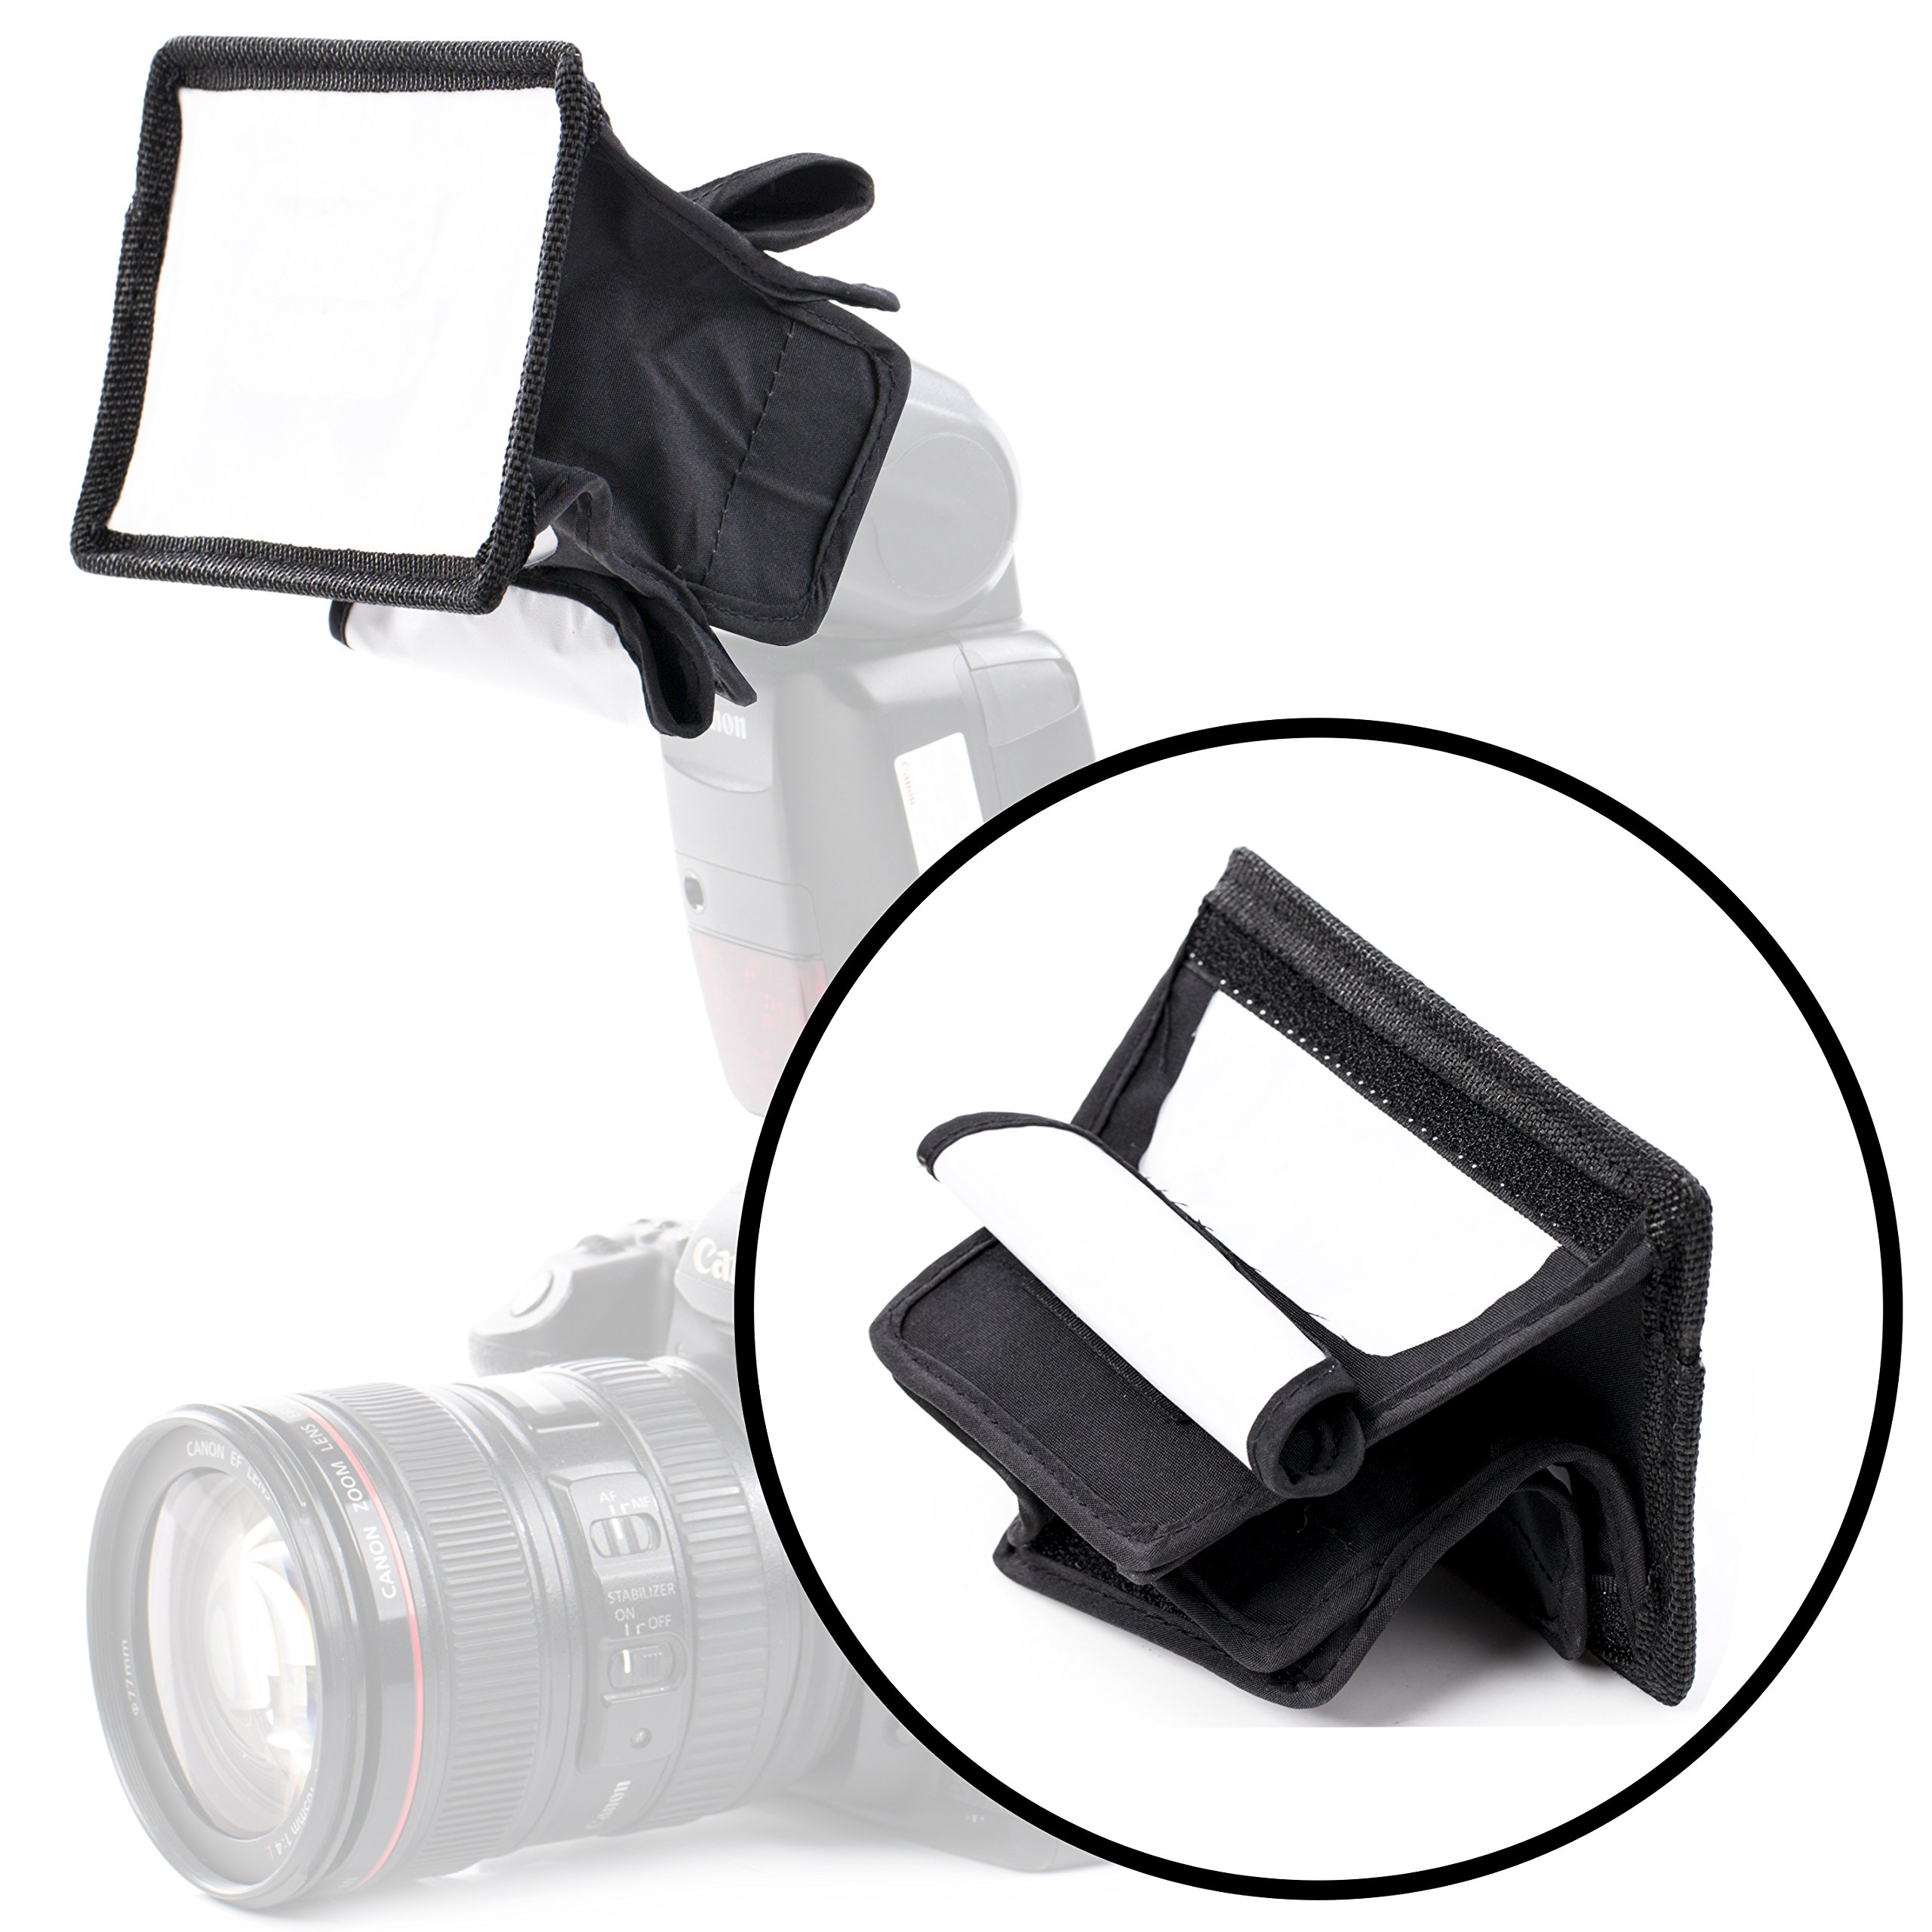 Movo MP-LB1 3.5x5 Mini Speedlight Fabric Flash Softbox Diffuser with Roll-Up Windows for Fill Light/Bounce Control - Universal Design Fits Most Flashes